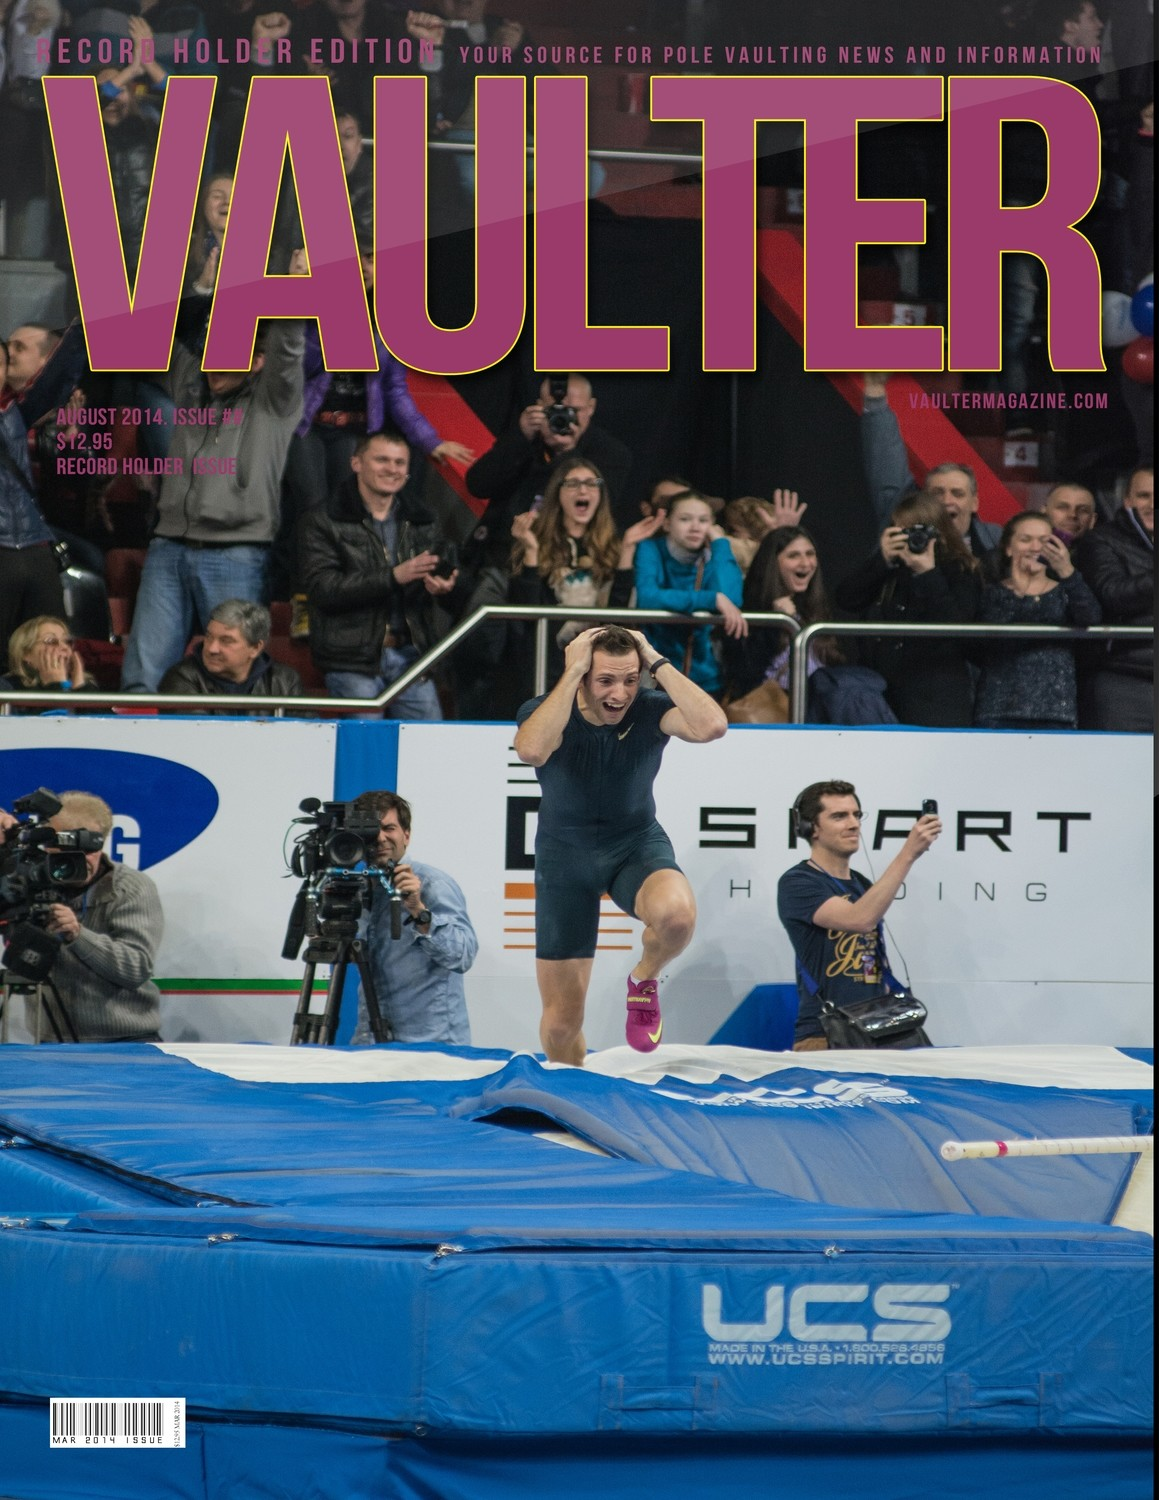 2 Year Hard Copy Subscription of Vaulter Magazine